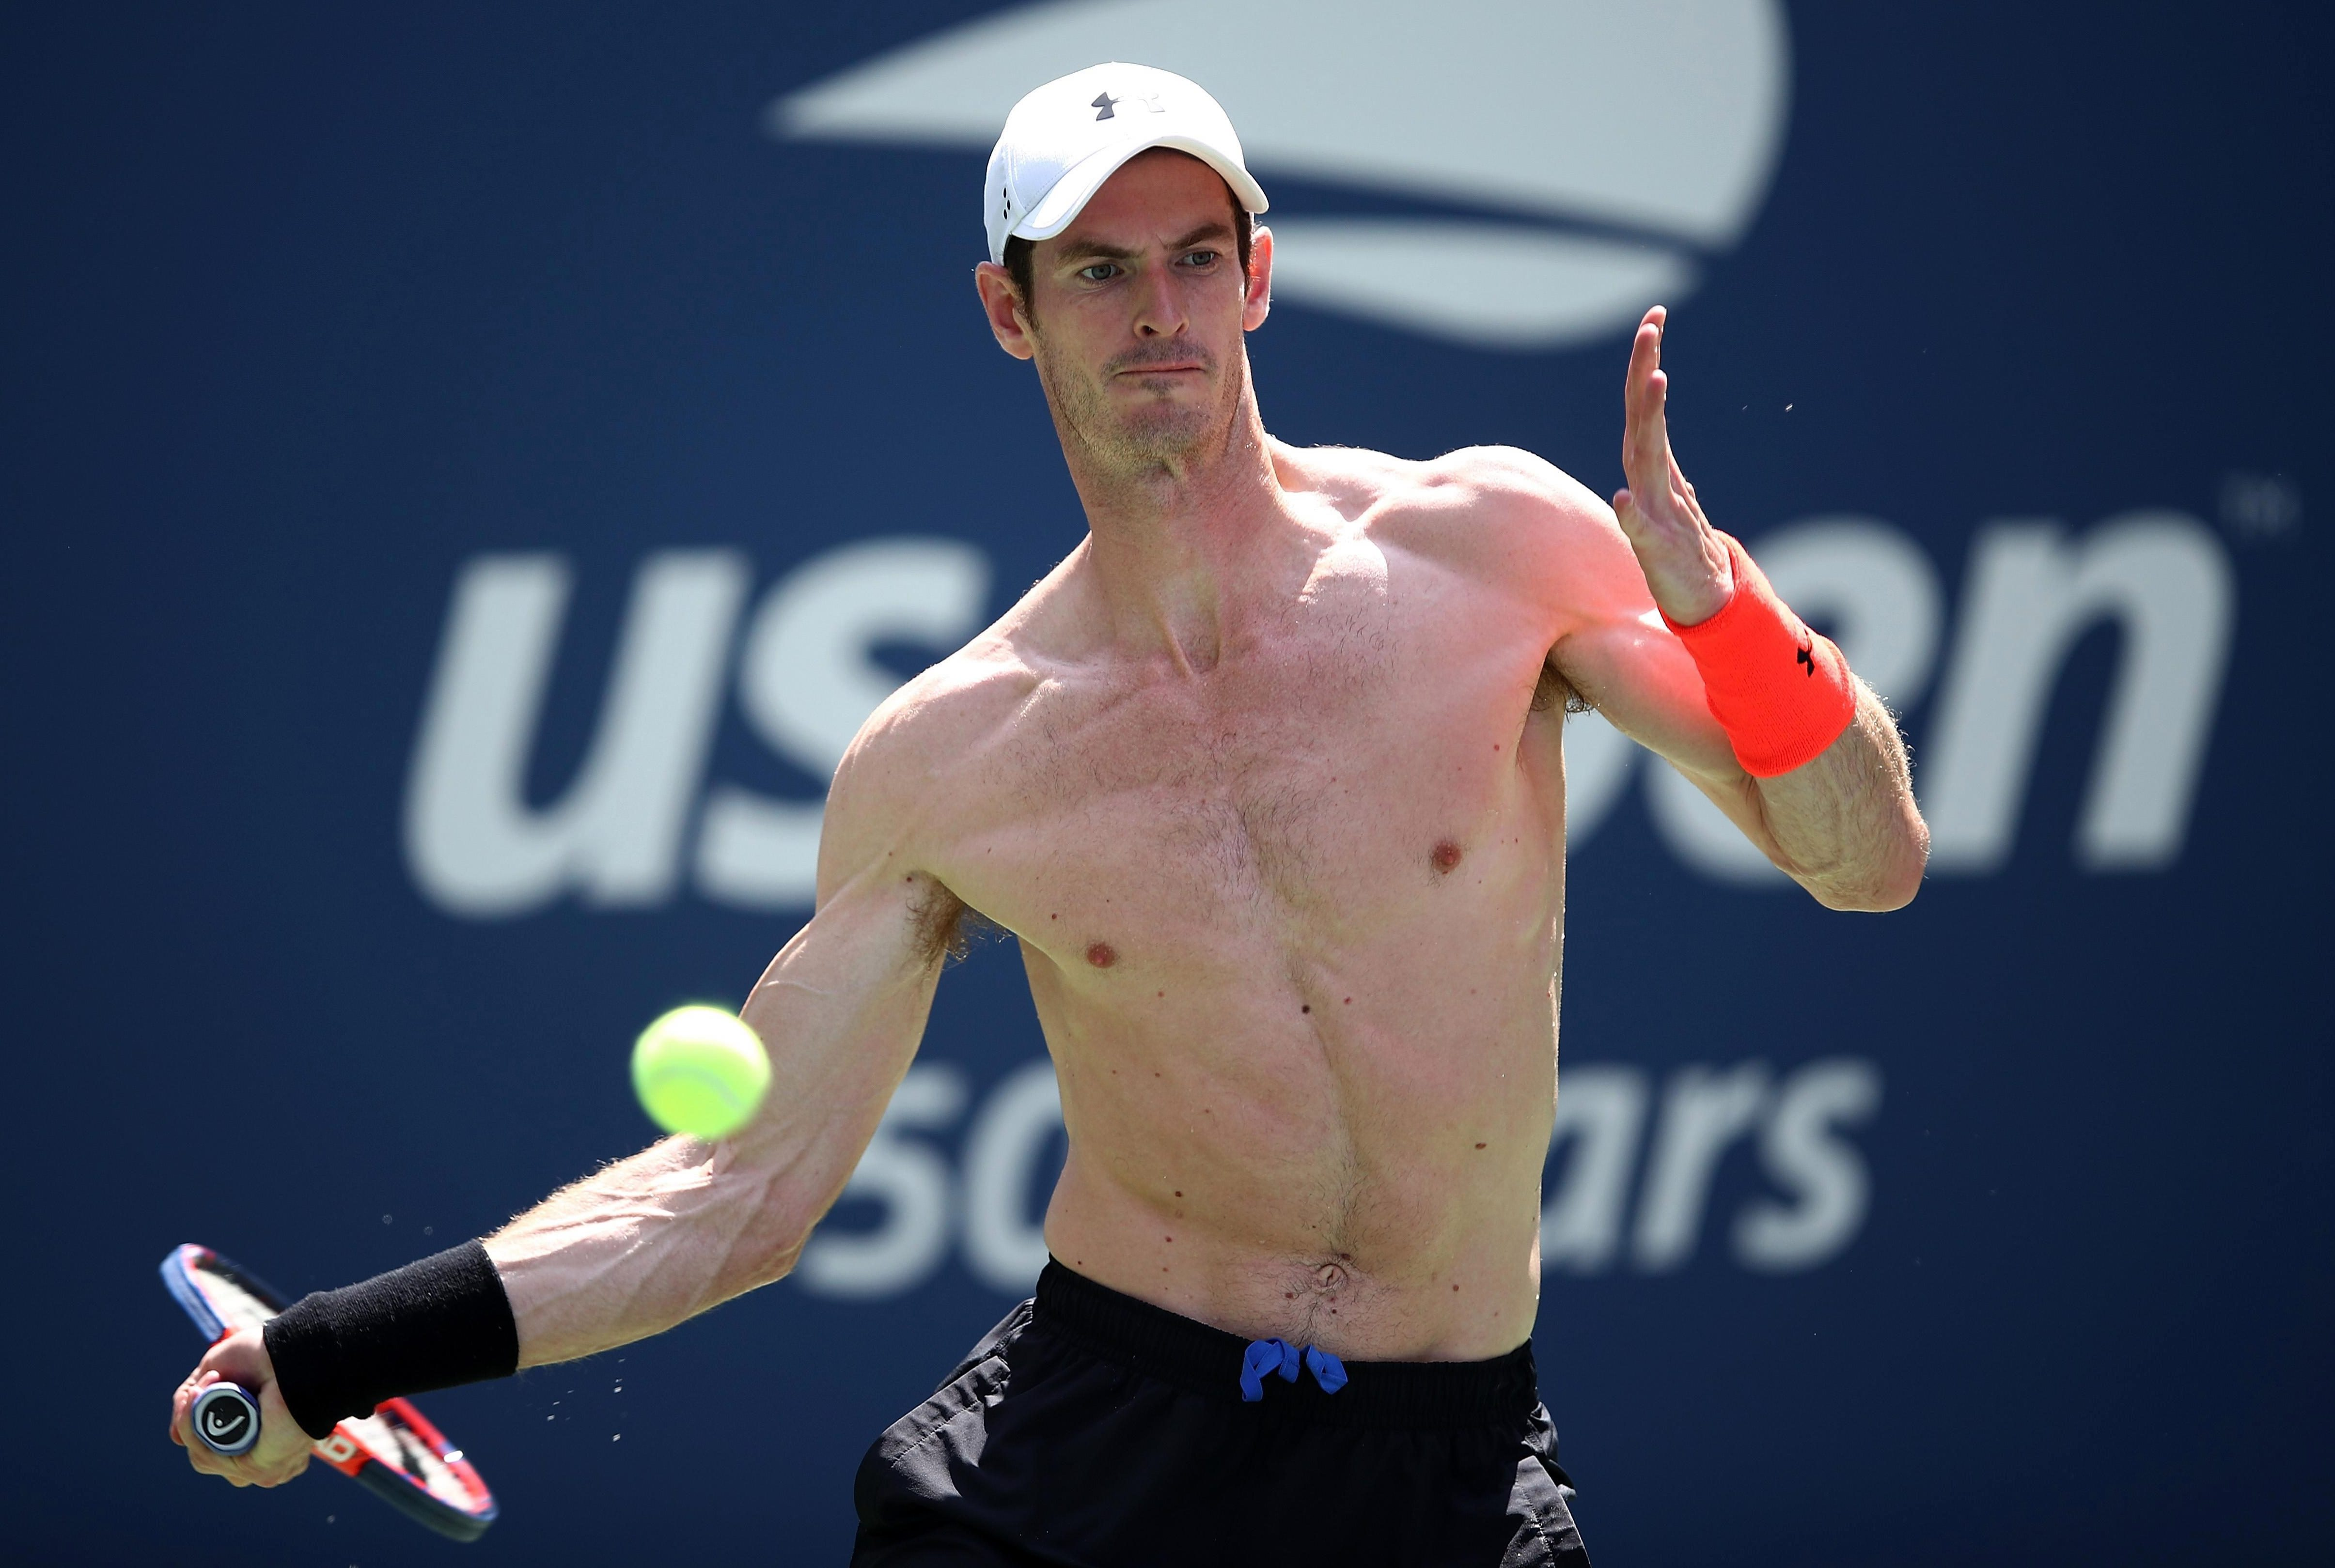 Murray looks in tip top shape and ready to battle the conditions even though he is constantly consuming food and drink